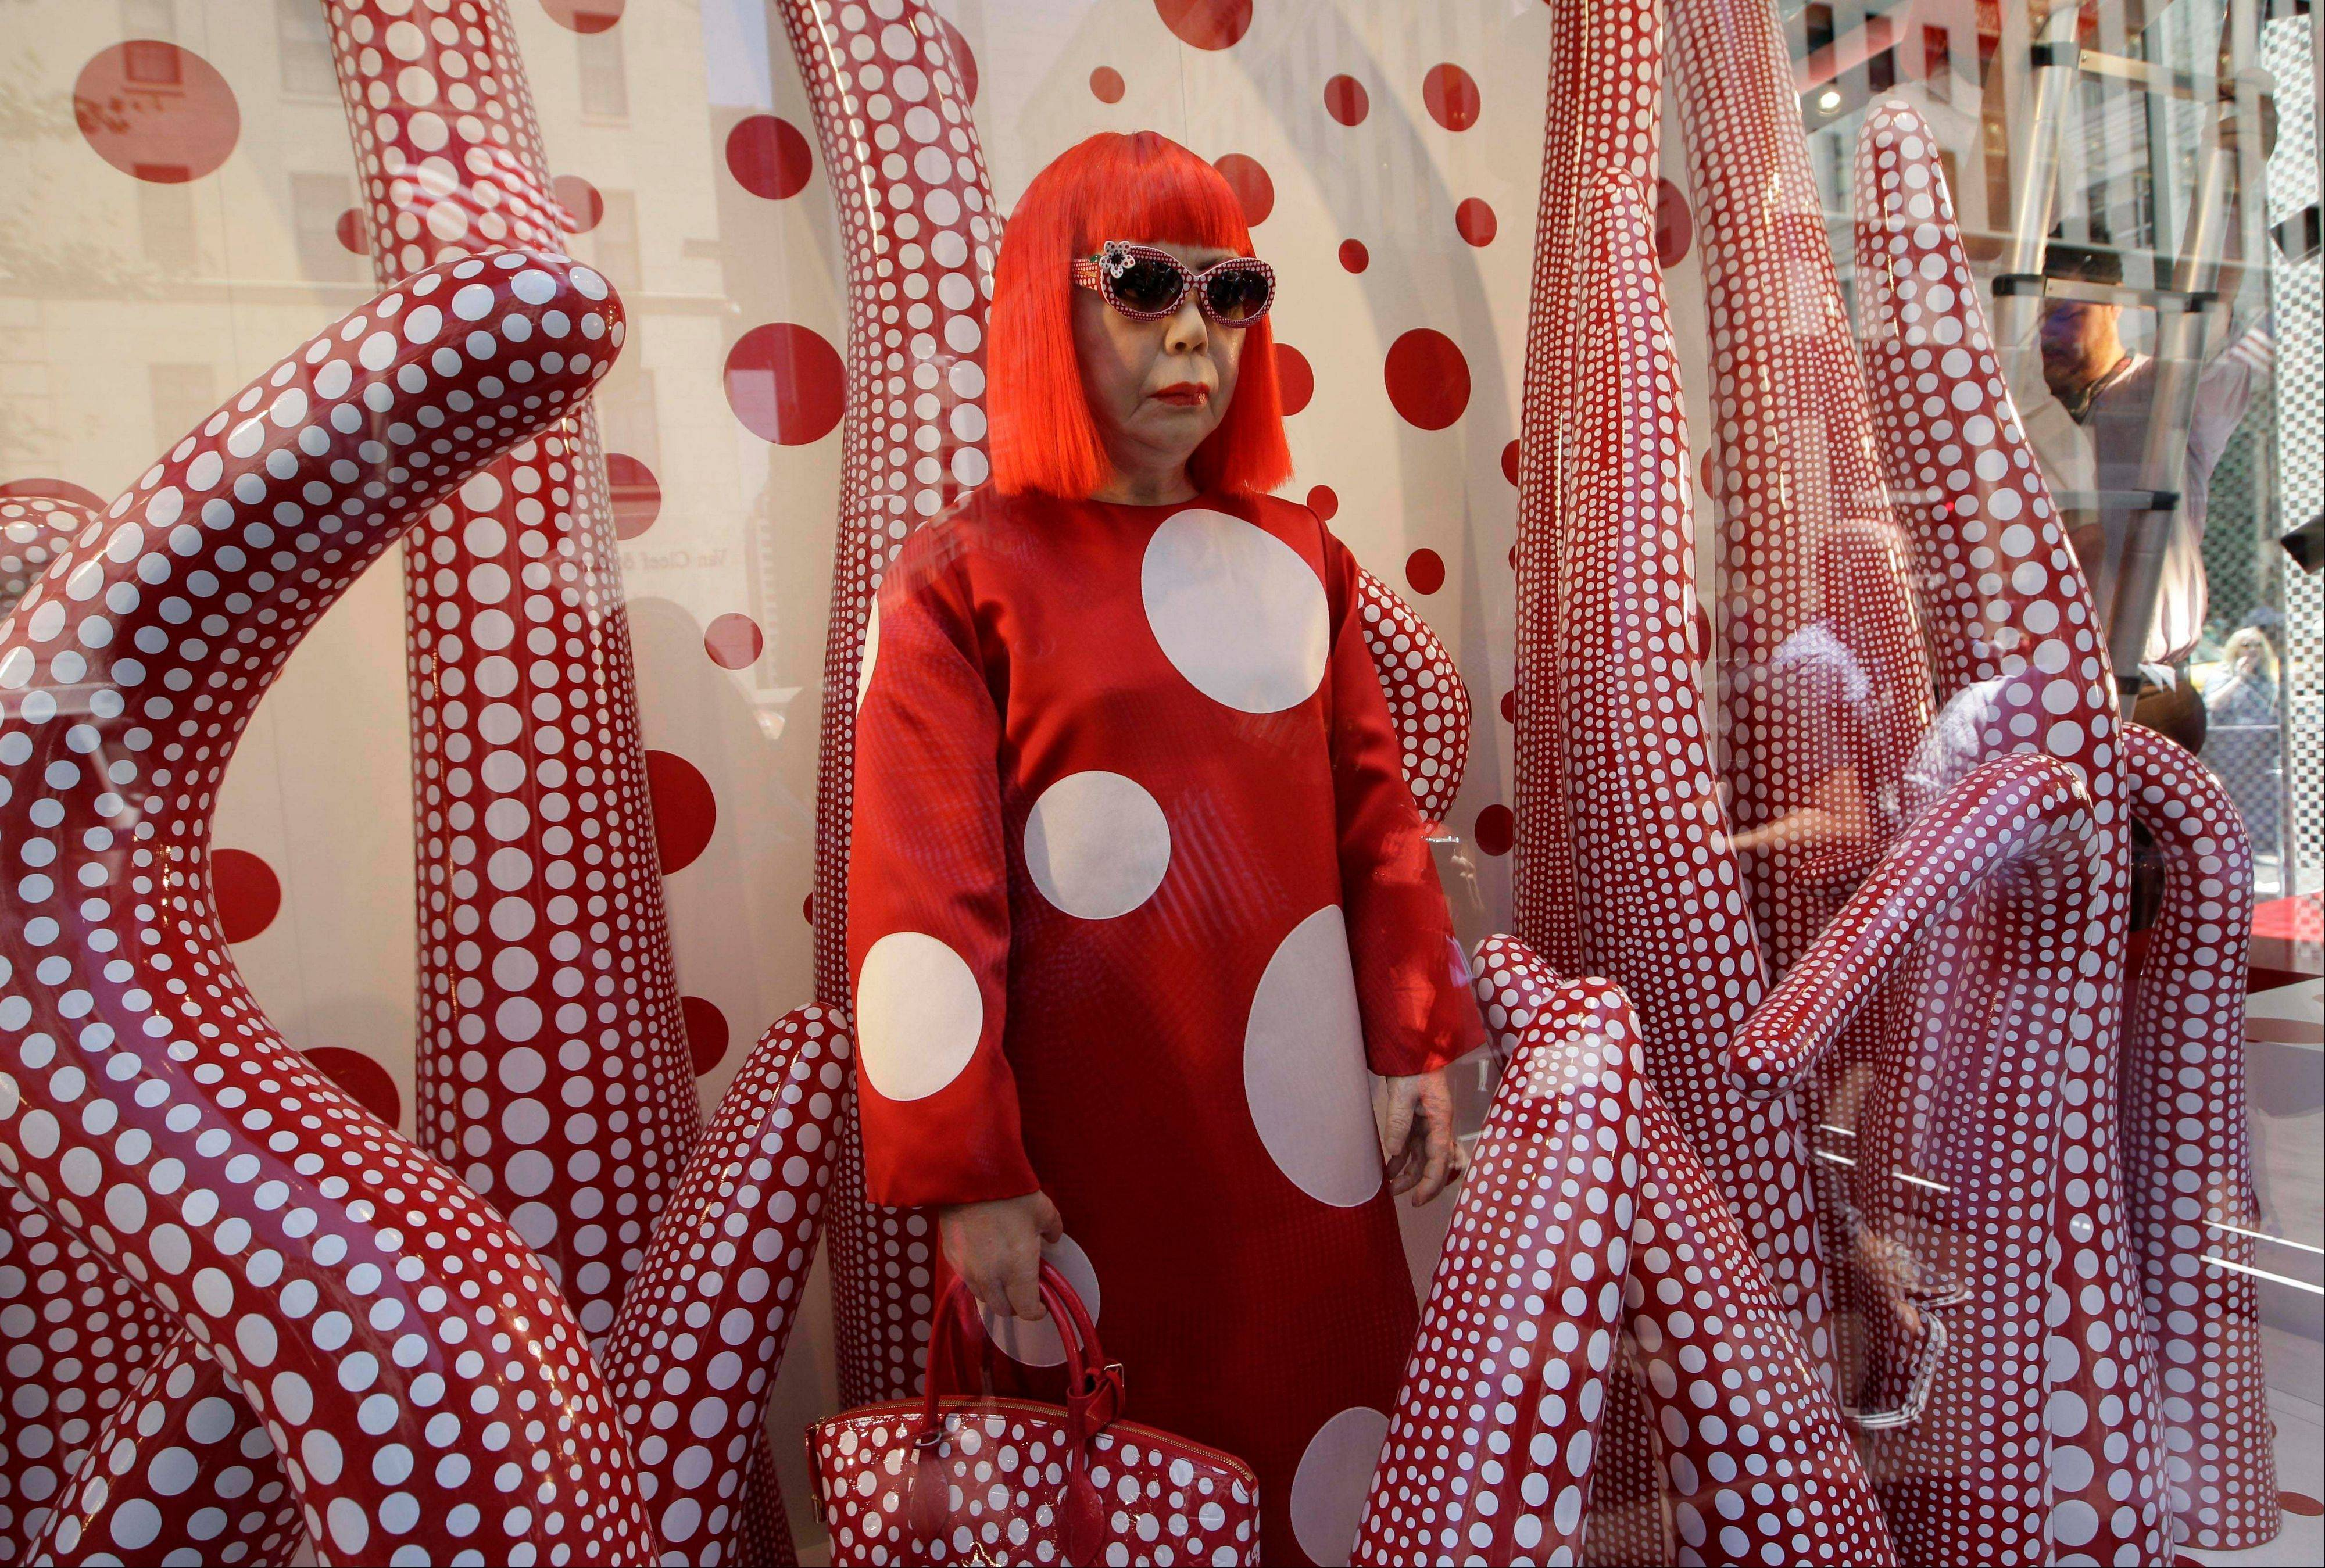 A wax model of Japanese artist Yayoi Kusama is displayed in the windows of Louis Vuitton's flagship Fifth Avenue store in New York on Tuesday, part of a collaborative collection by Kusama and Vuitton creative director Marc Jacobs.